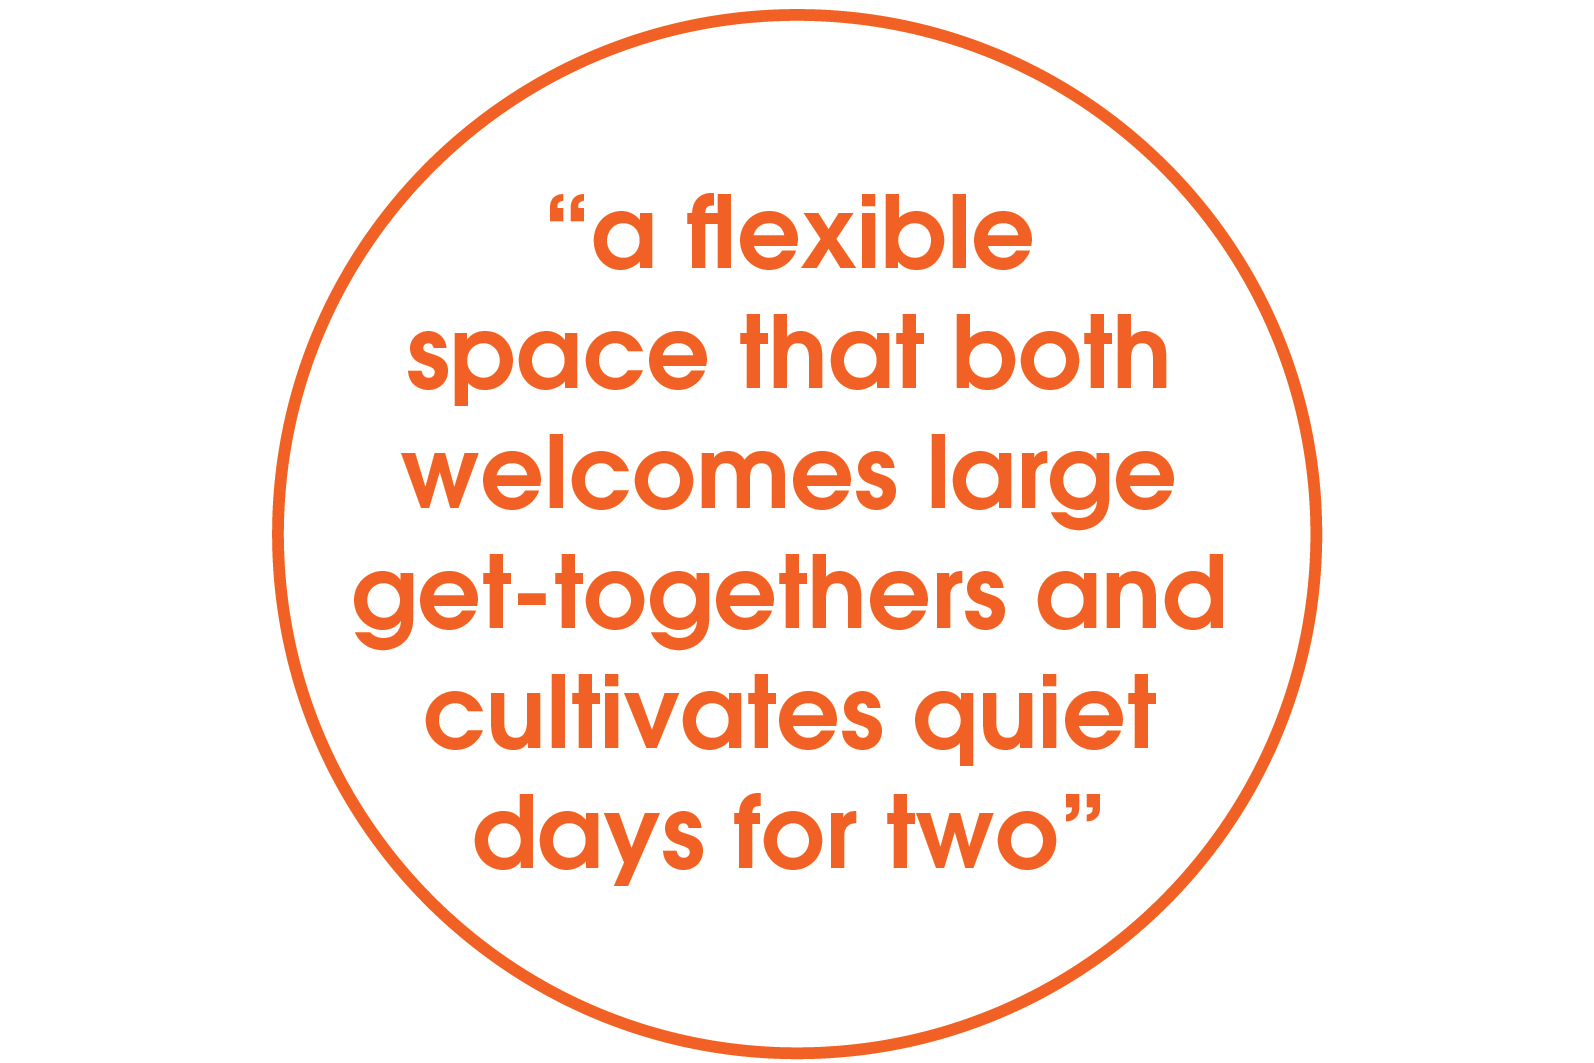 a flexible space quote